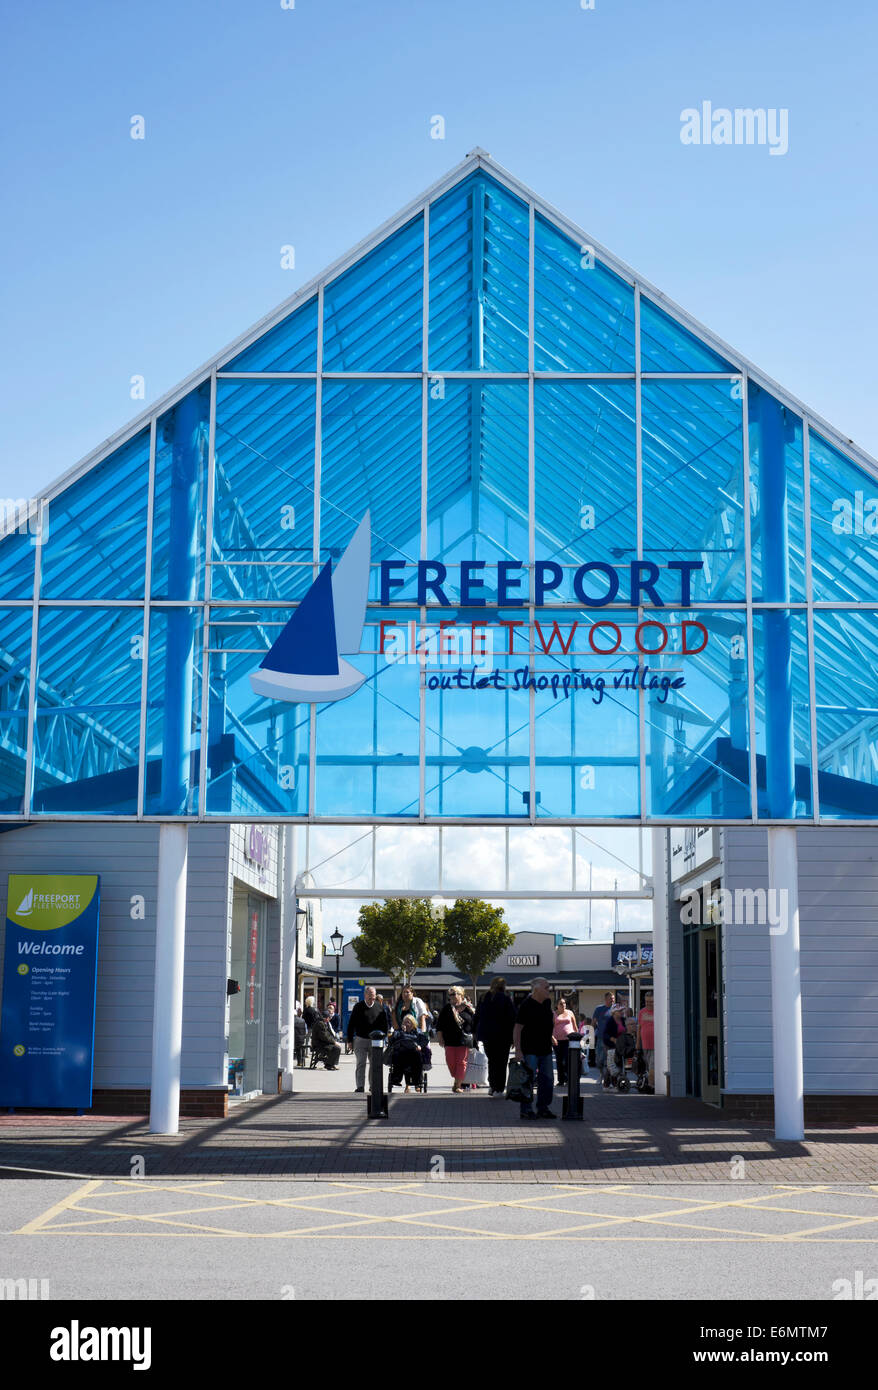 The entrance to the Fleetwood Freeport outlet shopping centre in Fleetwood, Lancashire, England - Stock Image